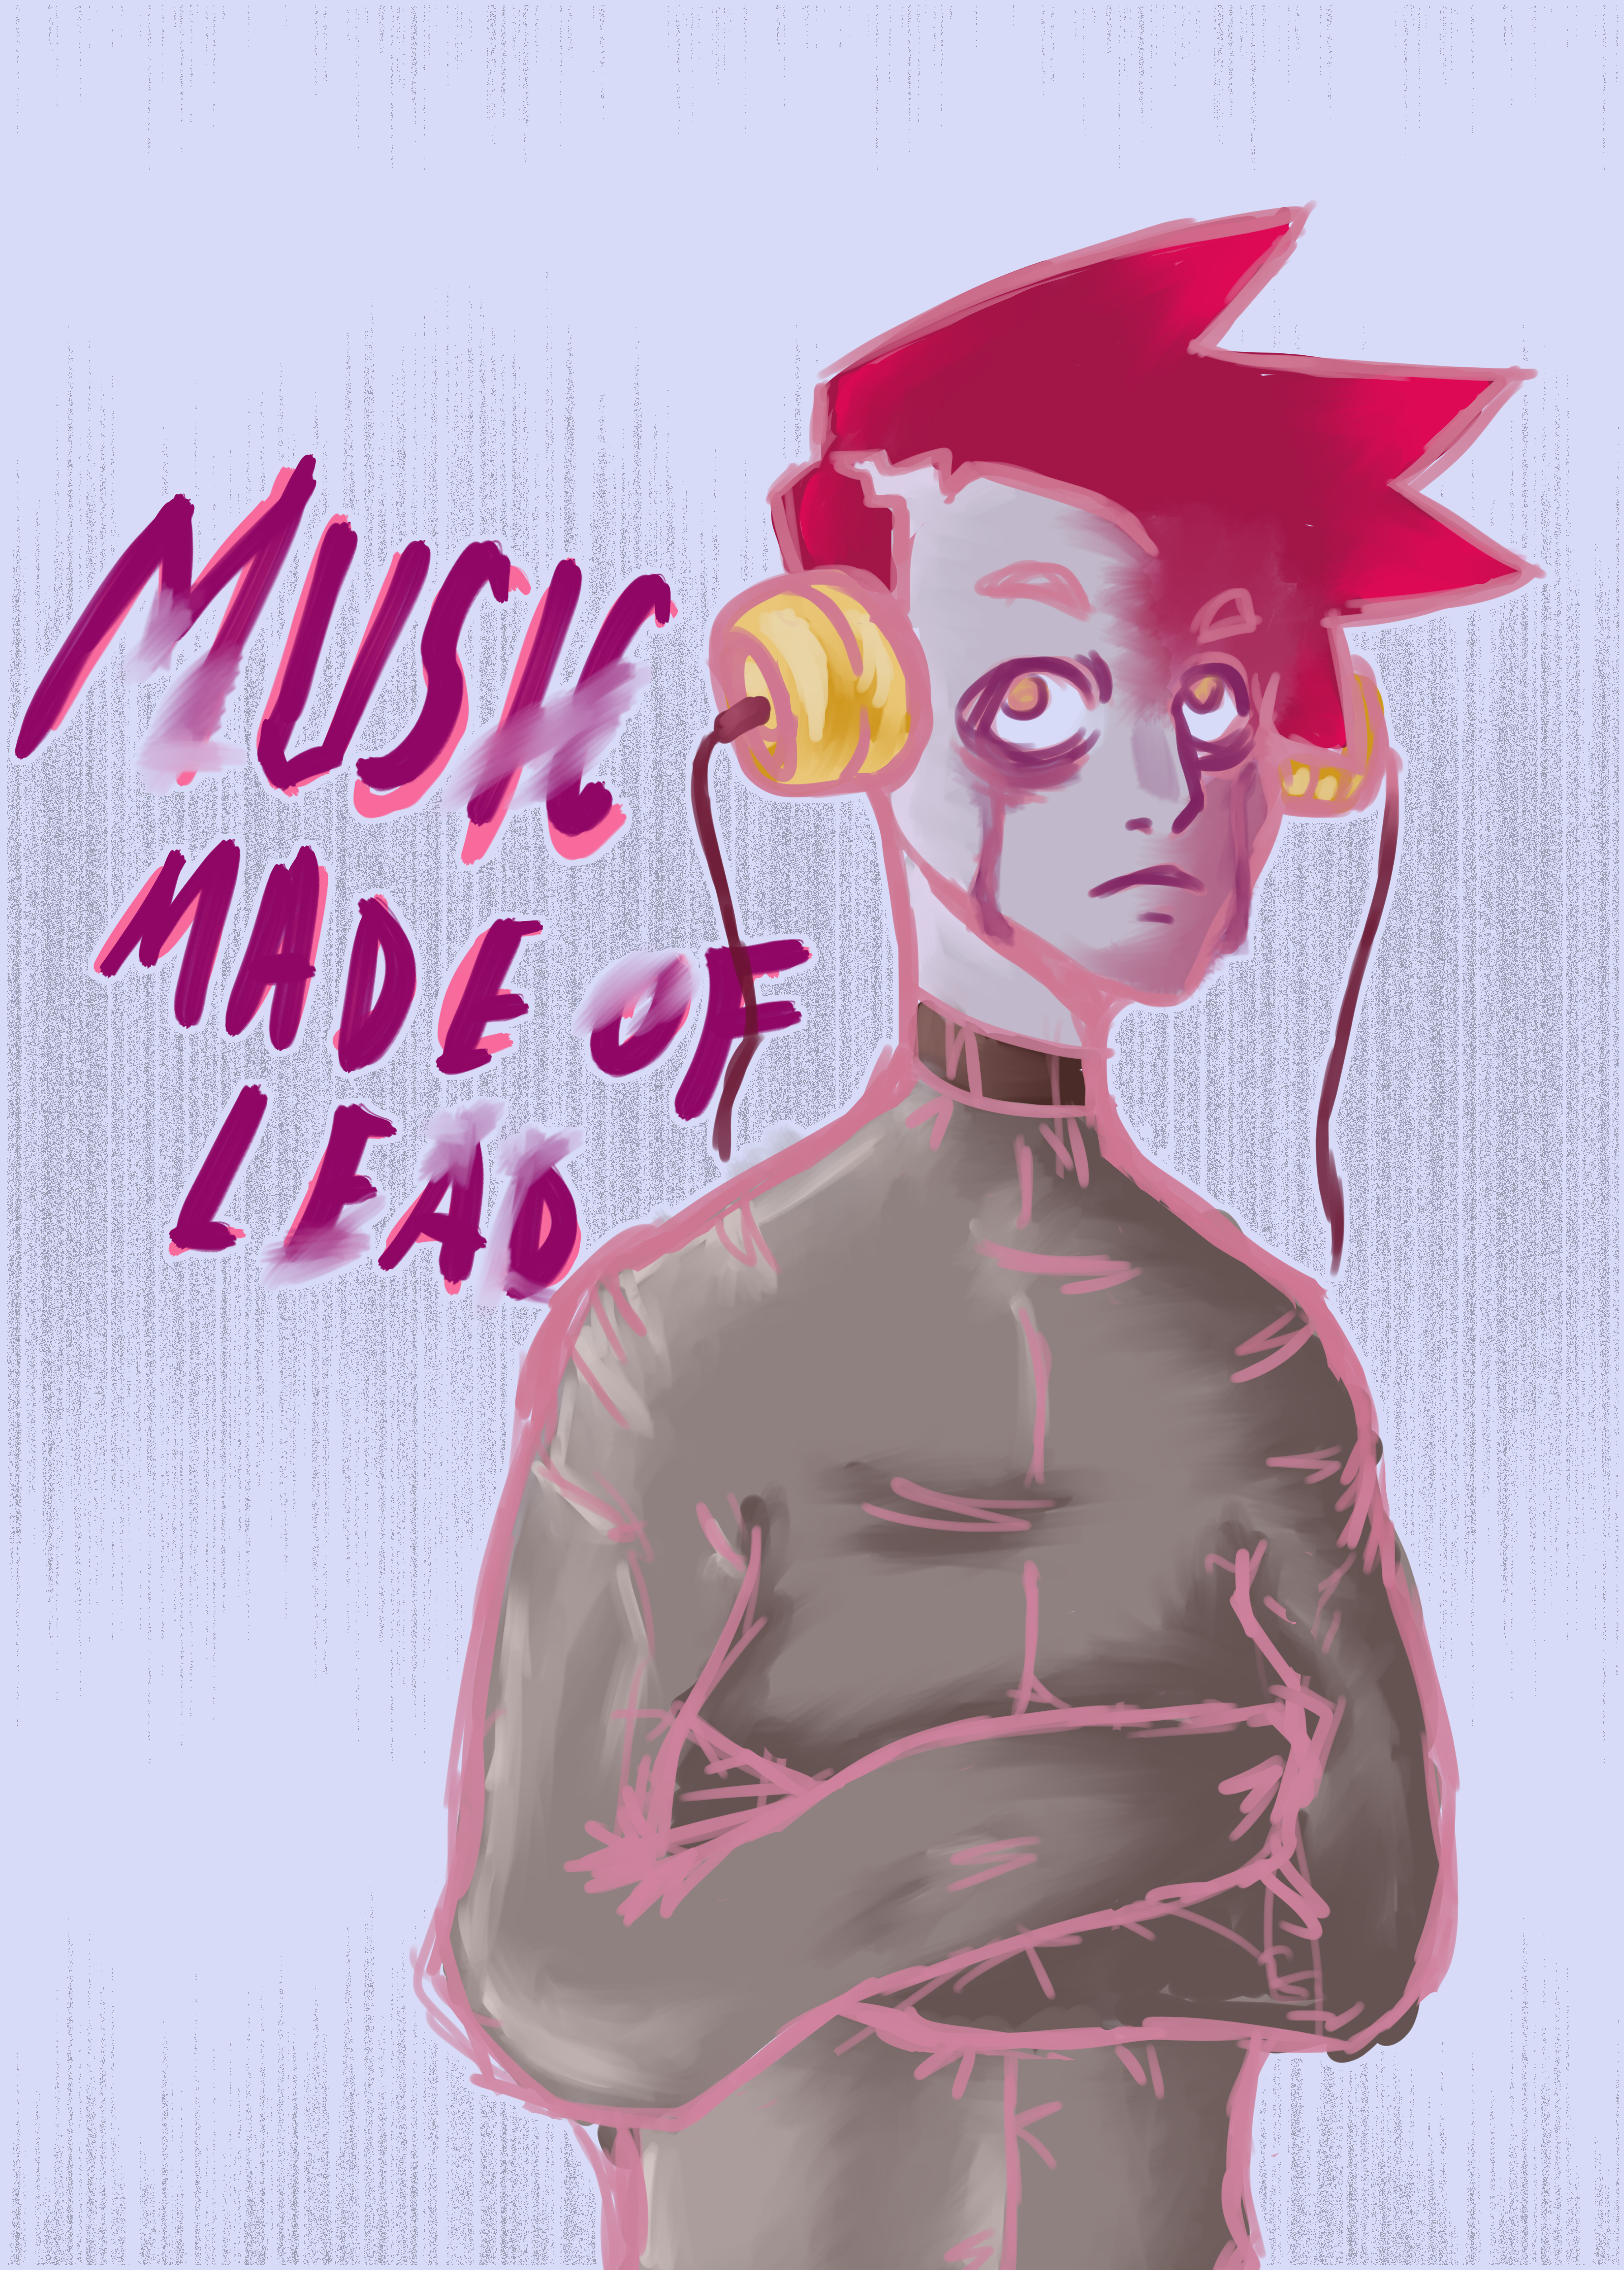 Music made of lead